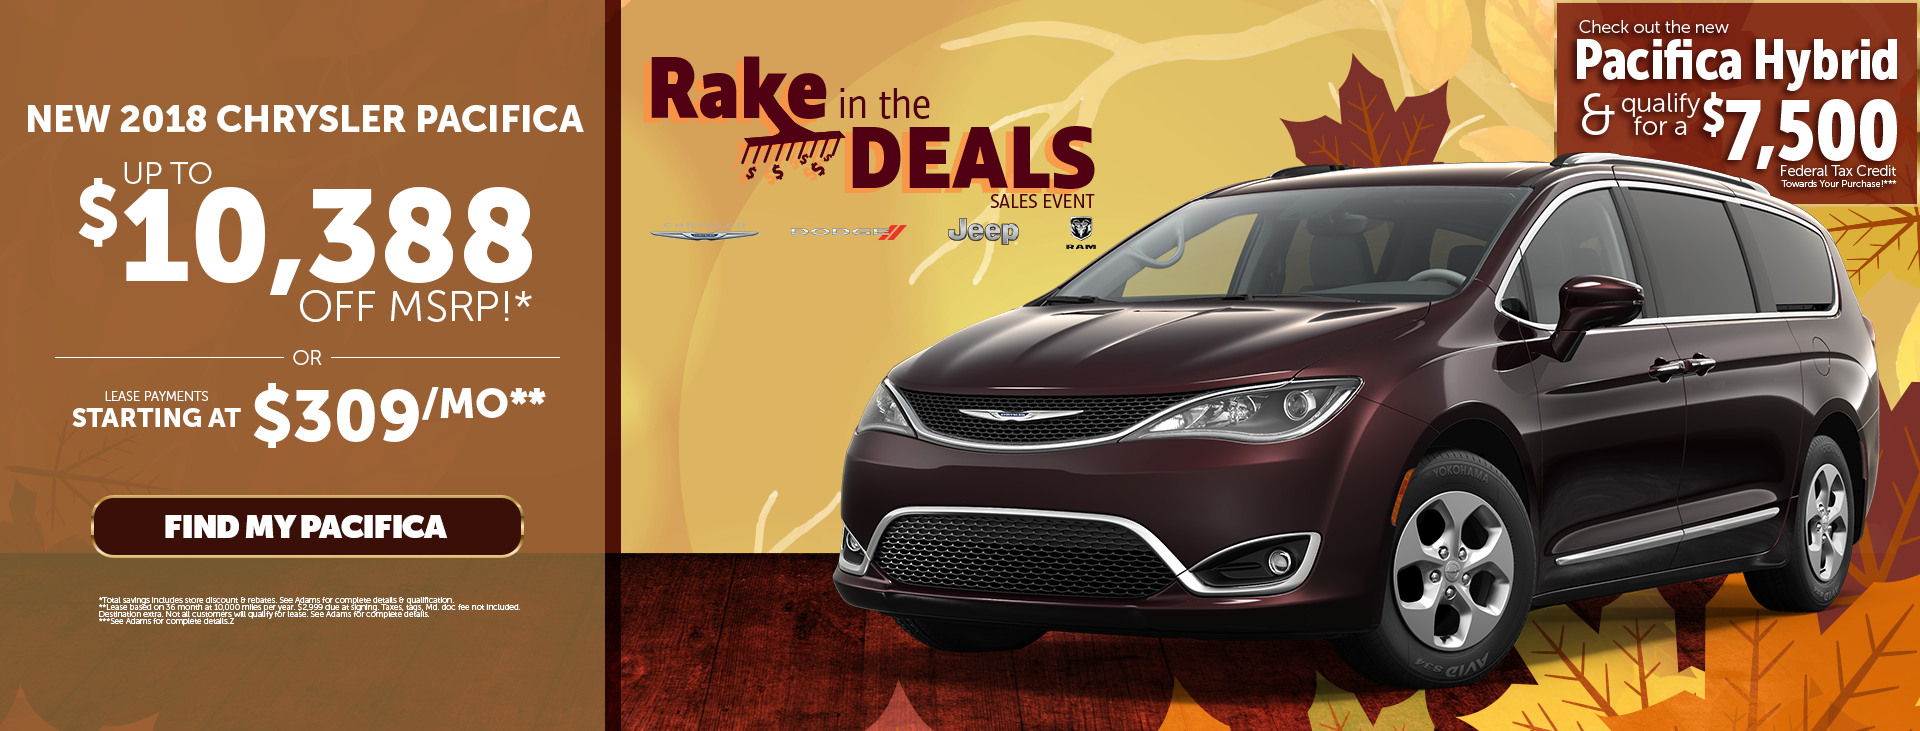 Rake in the Deals at Adams of Annapolis